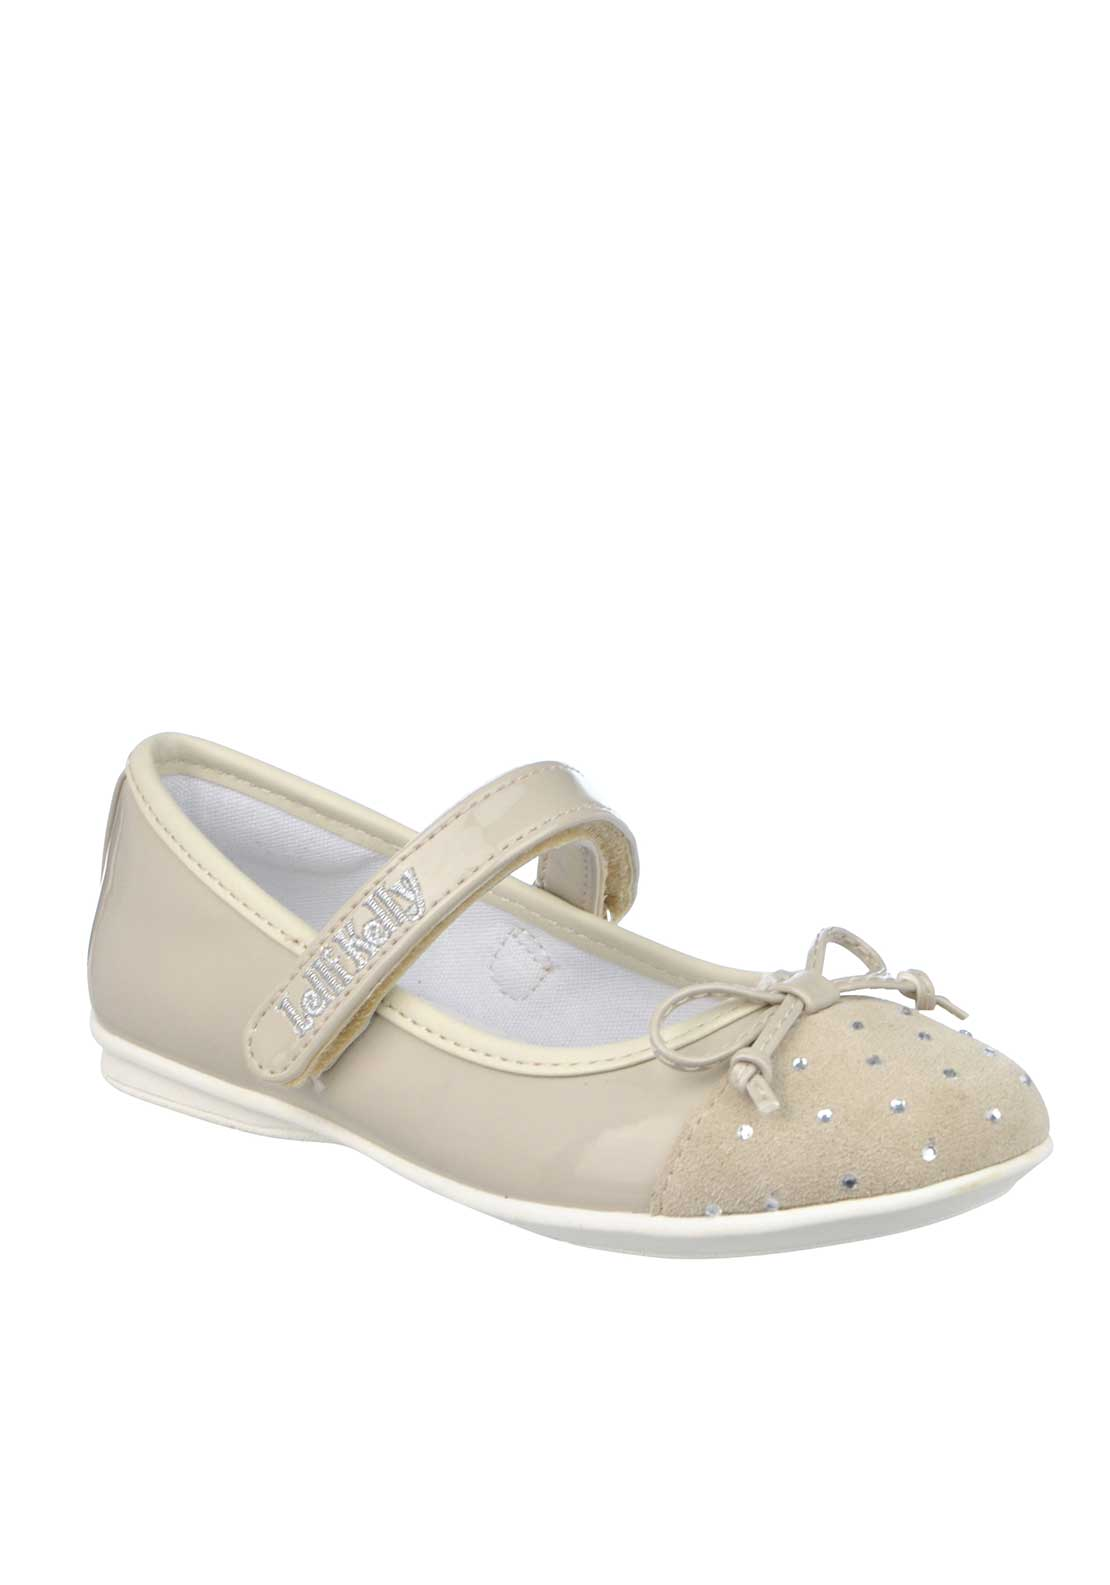 Lelli Kelly Girls Patent Leather Vanessa Velcro Dolly Shoes, Beige